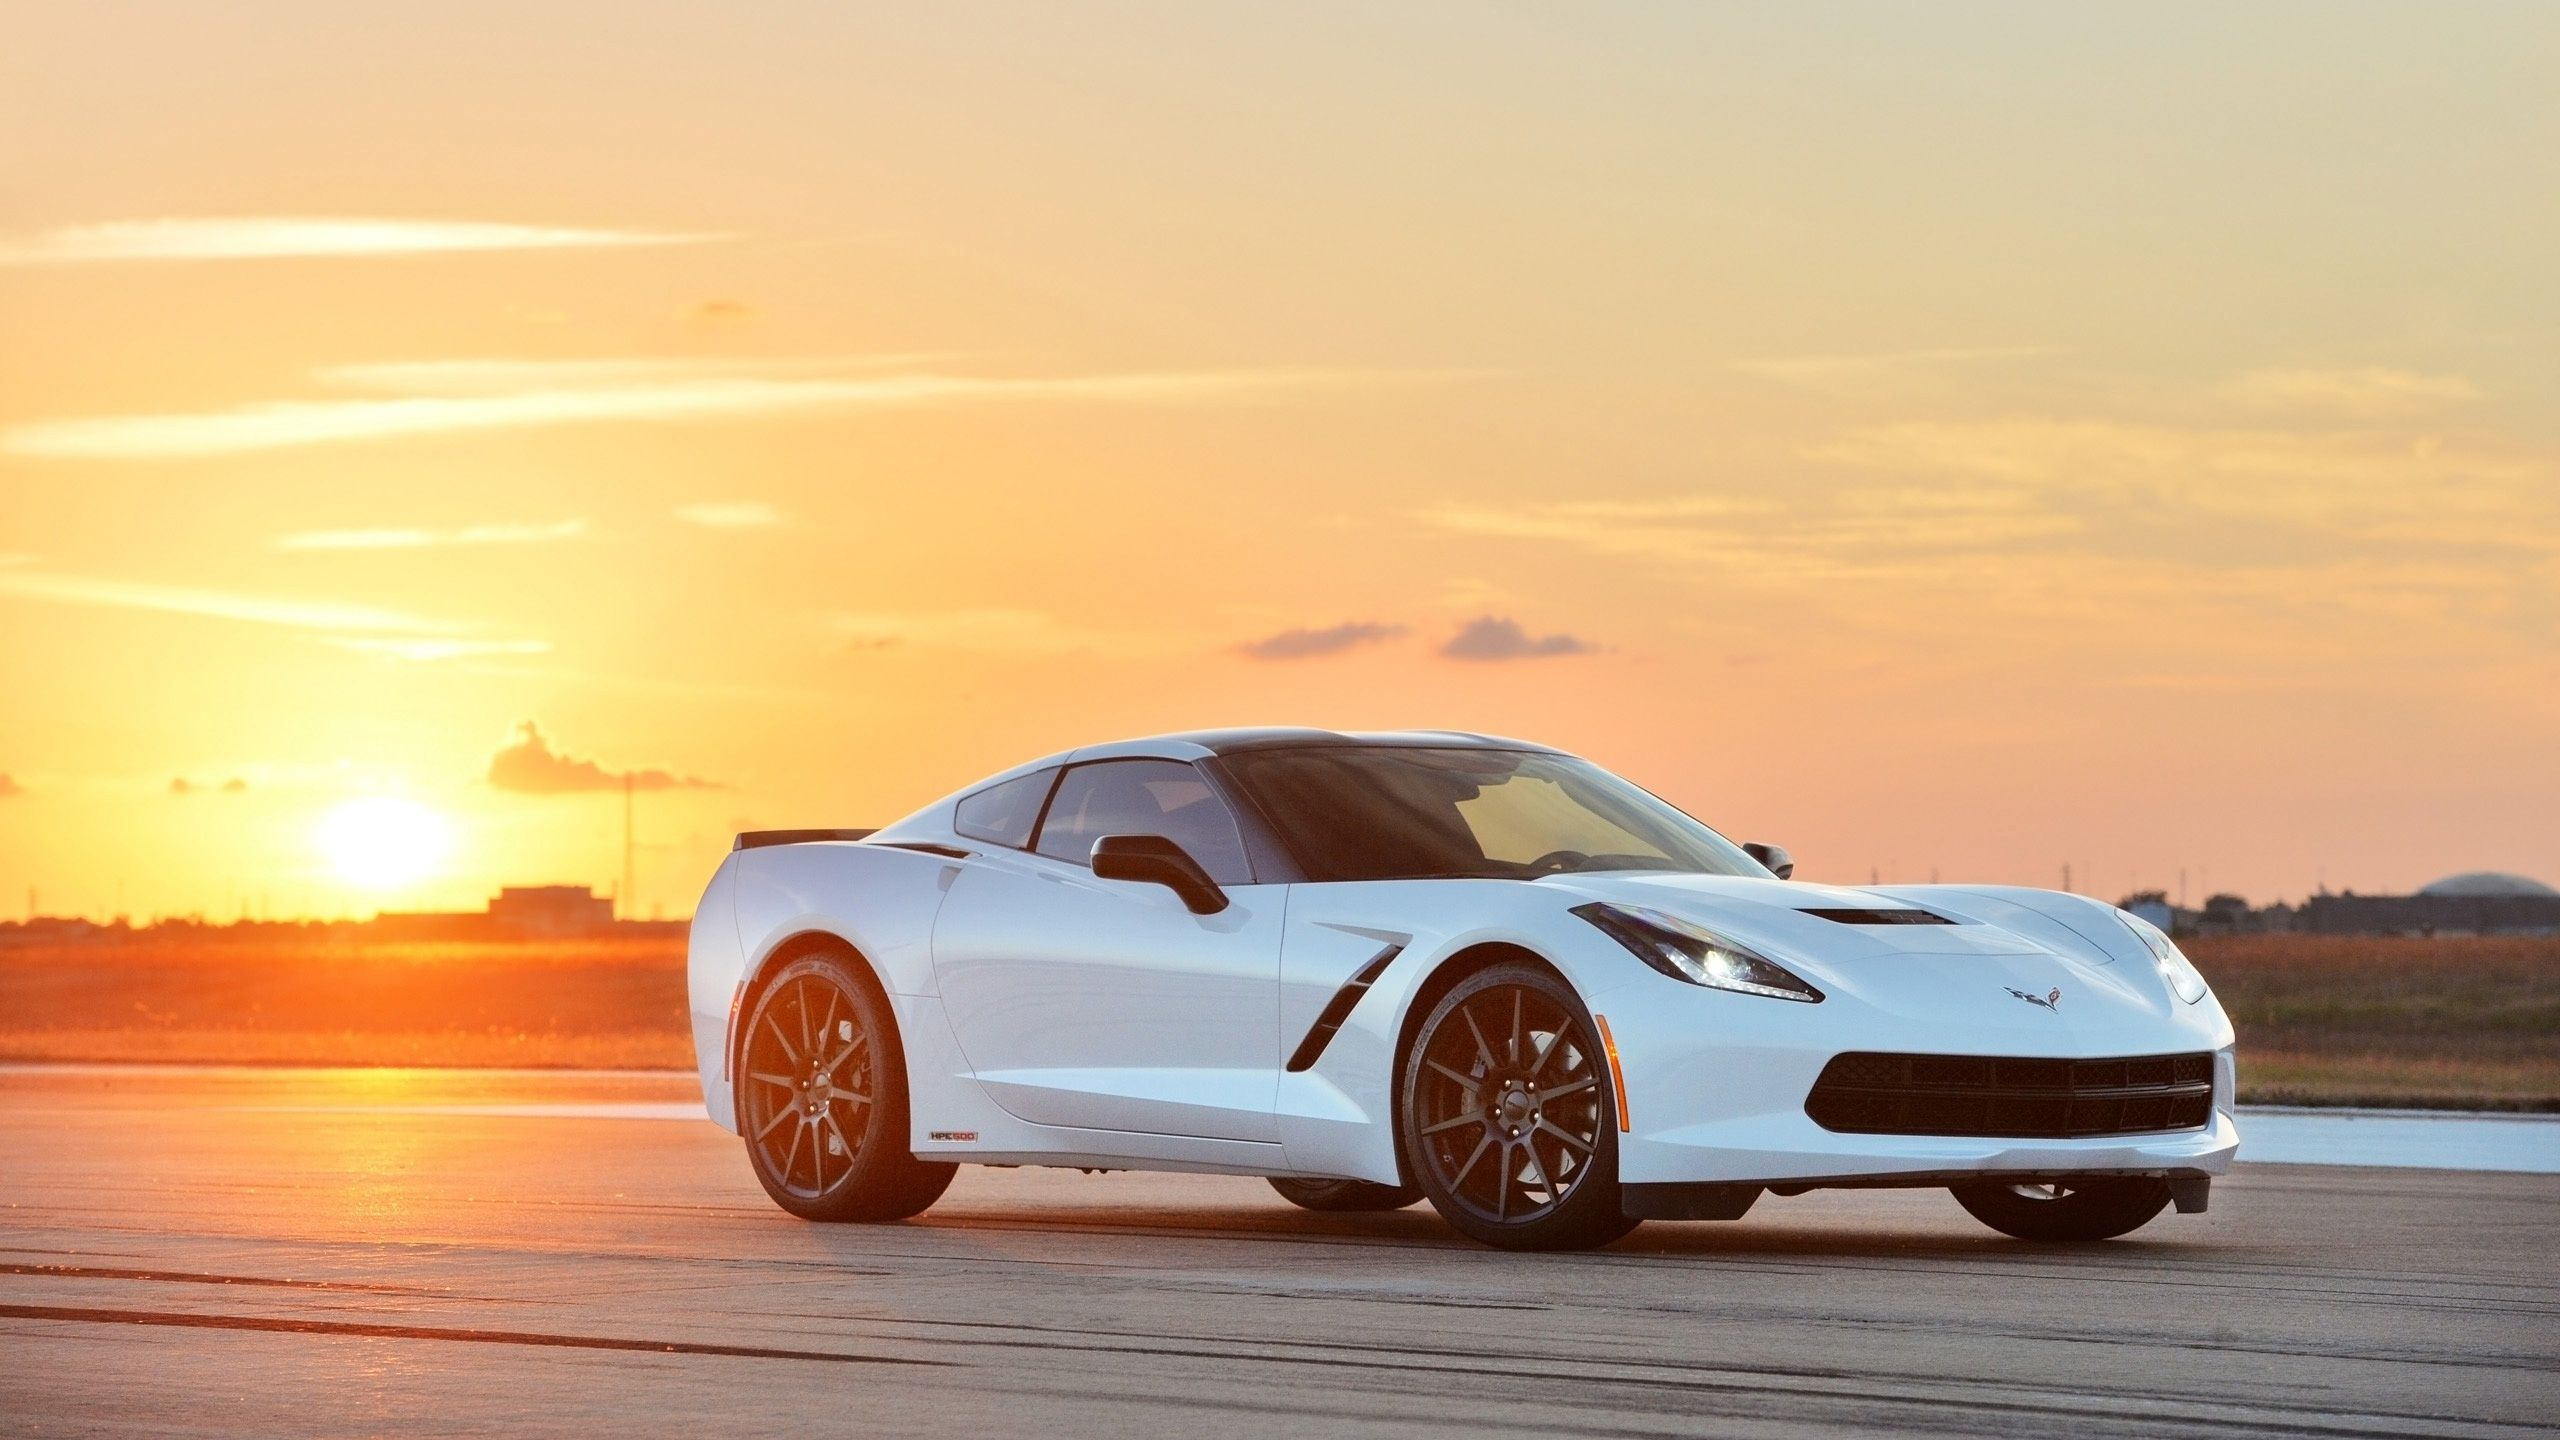 Corvette For Sale >> 2015 C7 Corvette Stingray: Specs, Performance & Pics